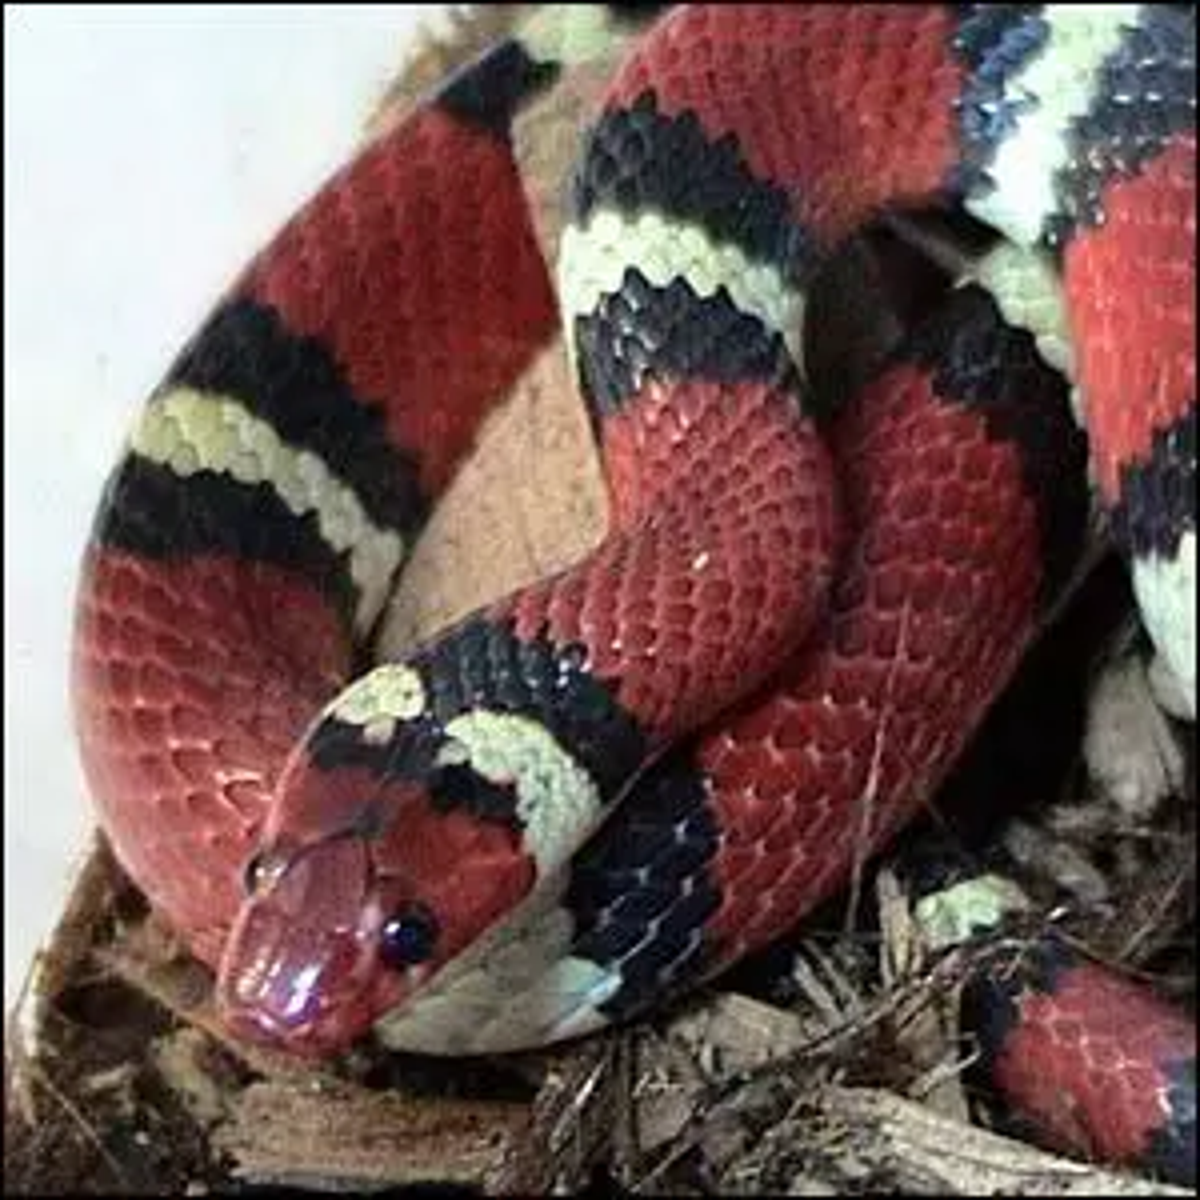 A Kingsnake coiled up and resting.